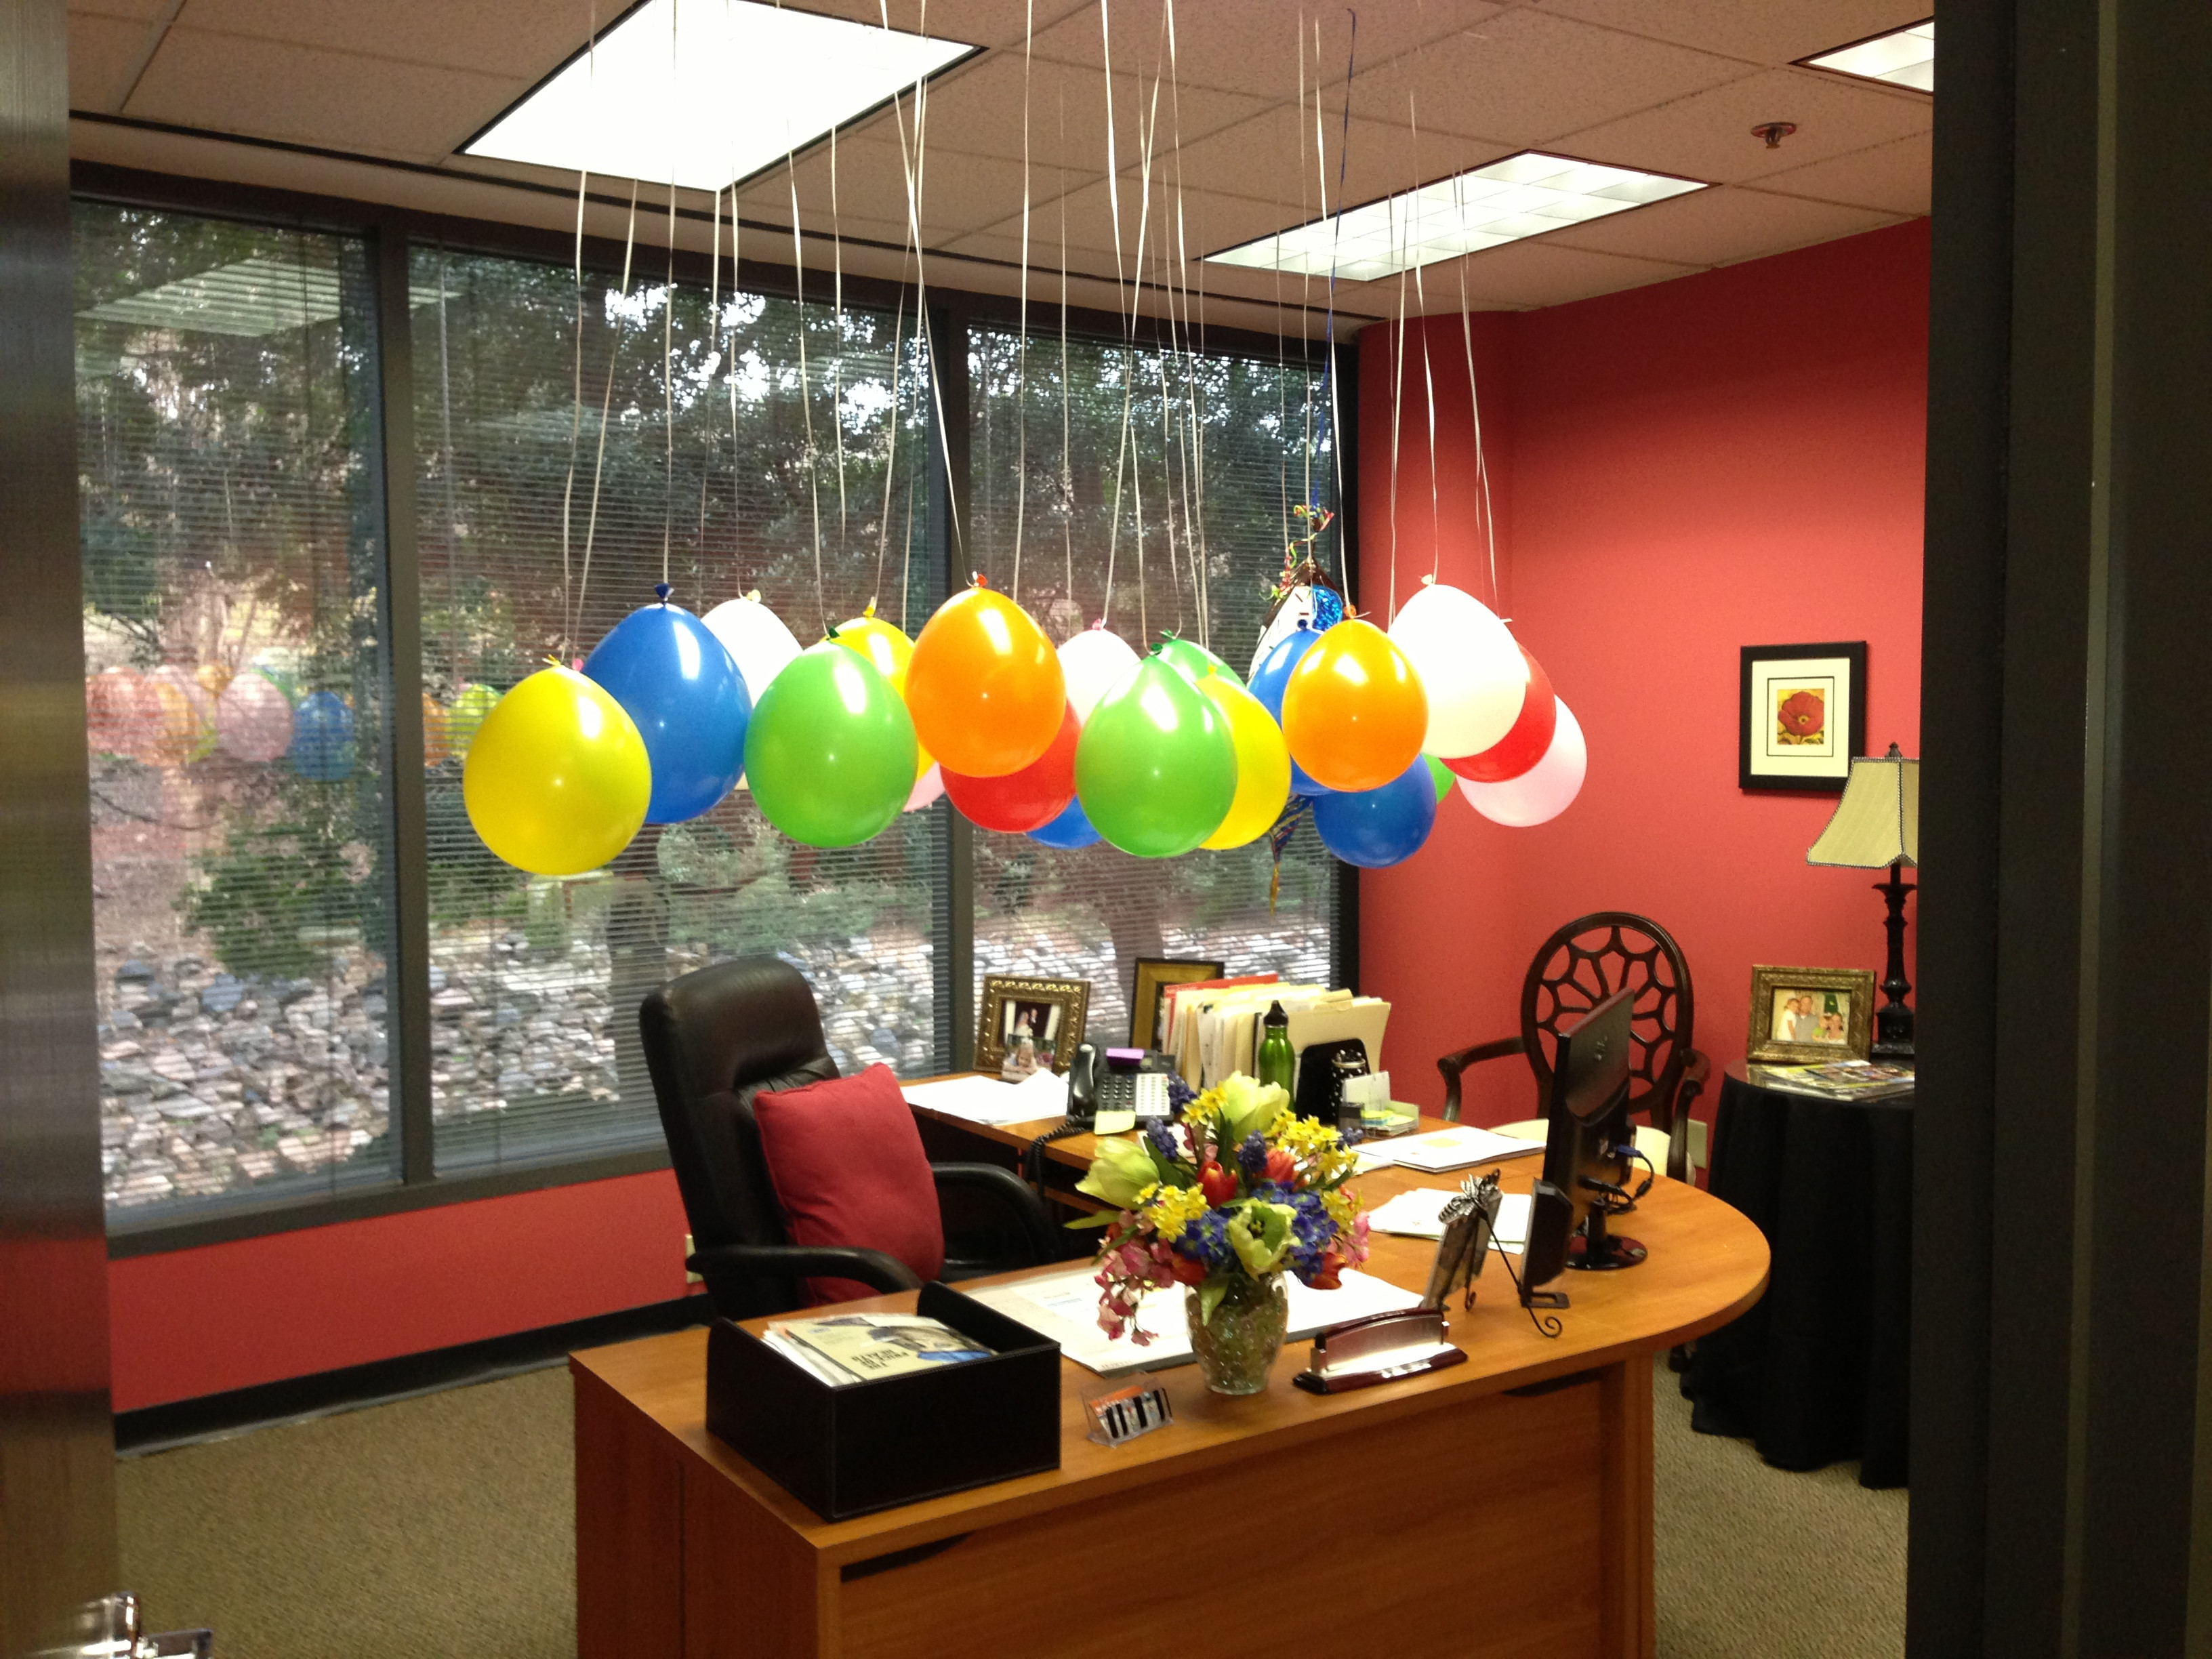 Best ideas about Office Birthday Decorations . Save or Pin Day 10 Twenty1 Days 2 a Fitter Me – twenty1days2change Now.